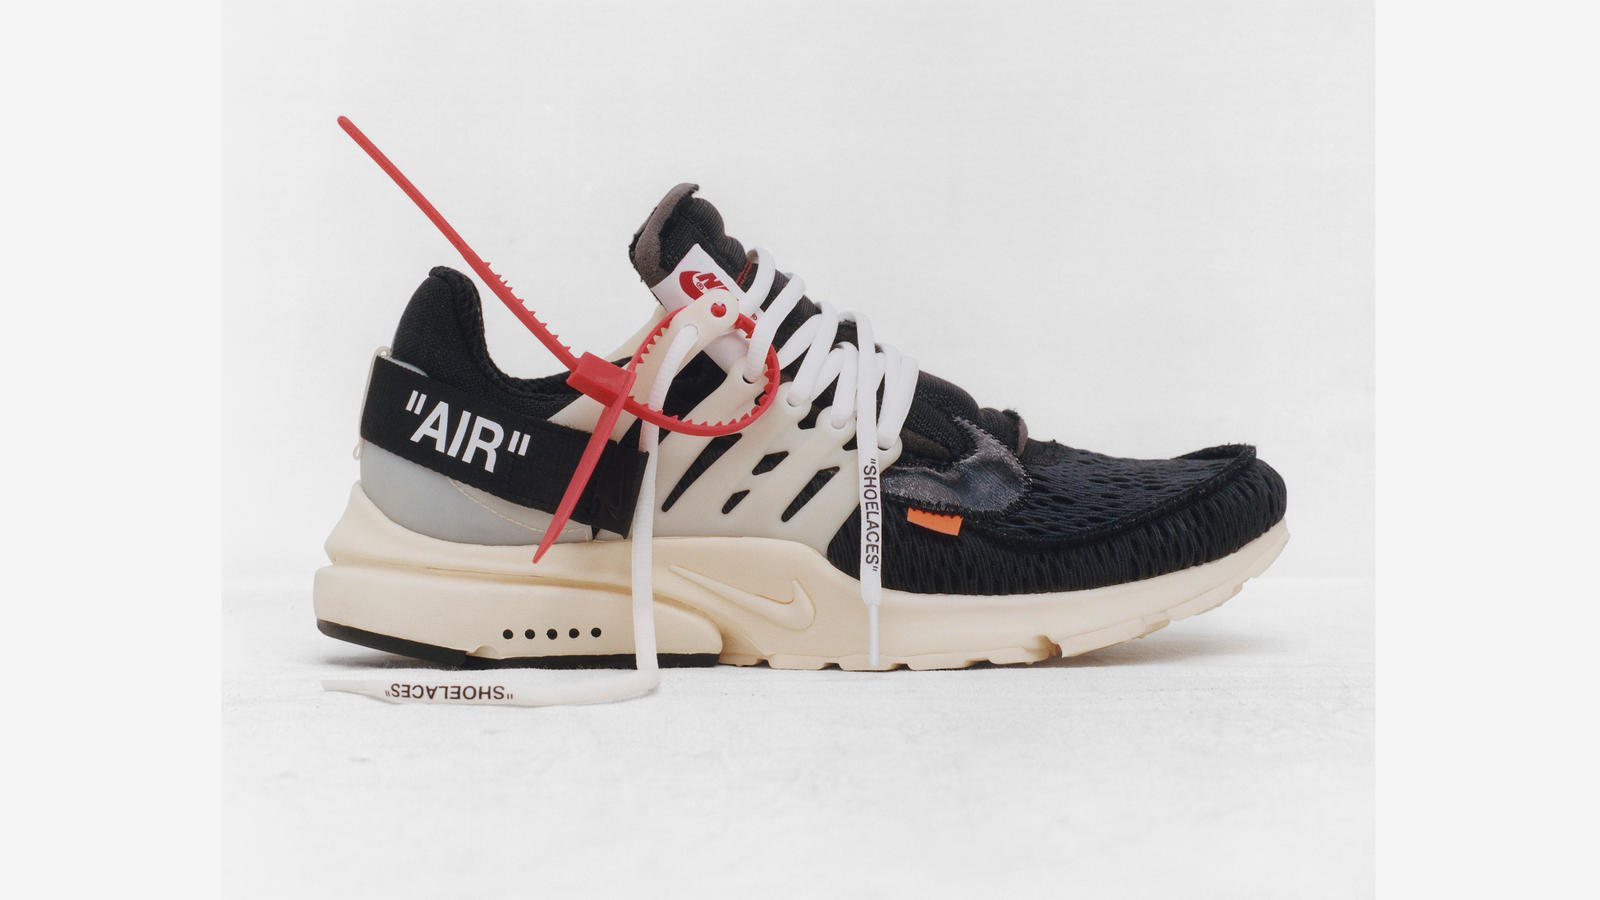 new style 56a8d 7acad OFF-WHITE PRESTOS  0%